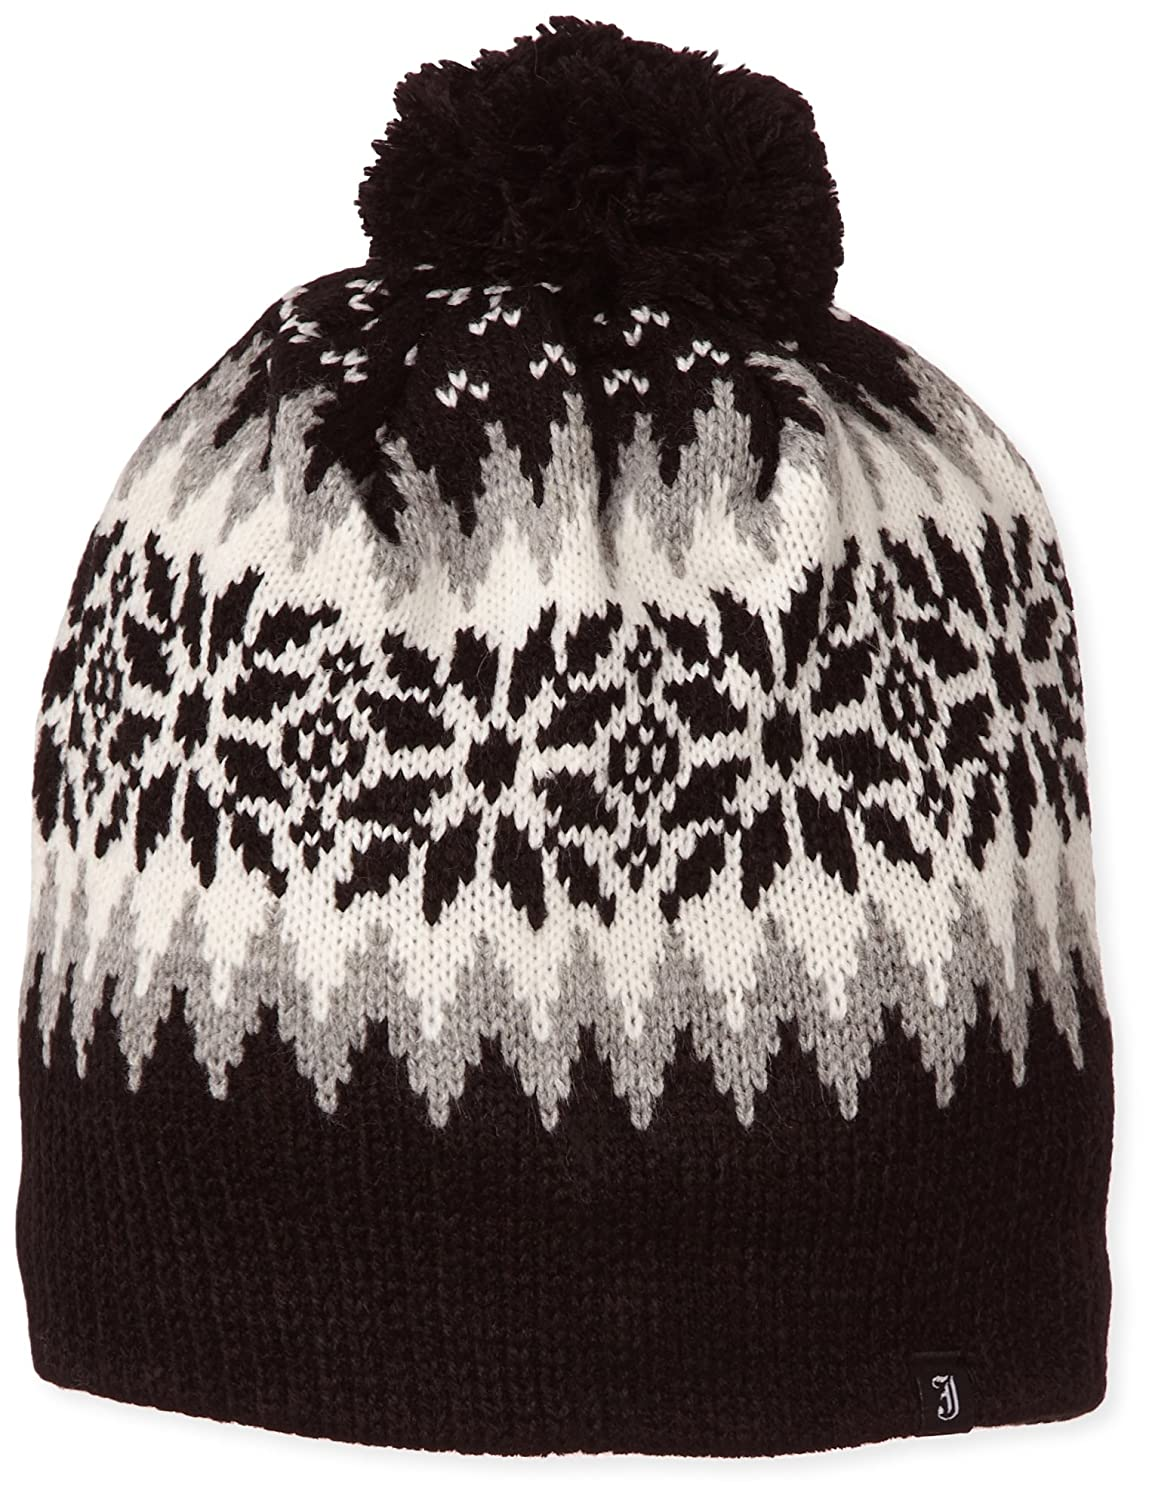 6df52c6ac13 Village Hats Men s Jaxon Hats Aspen Bobble Beanie Hat - Black Beanie Beanie